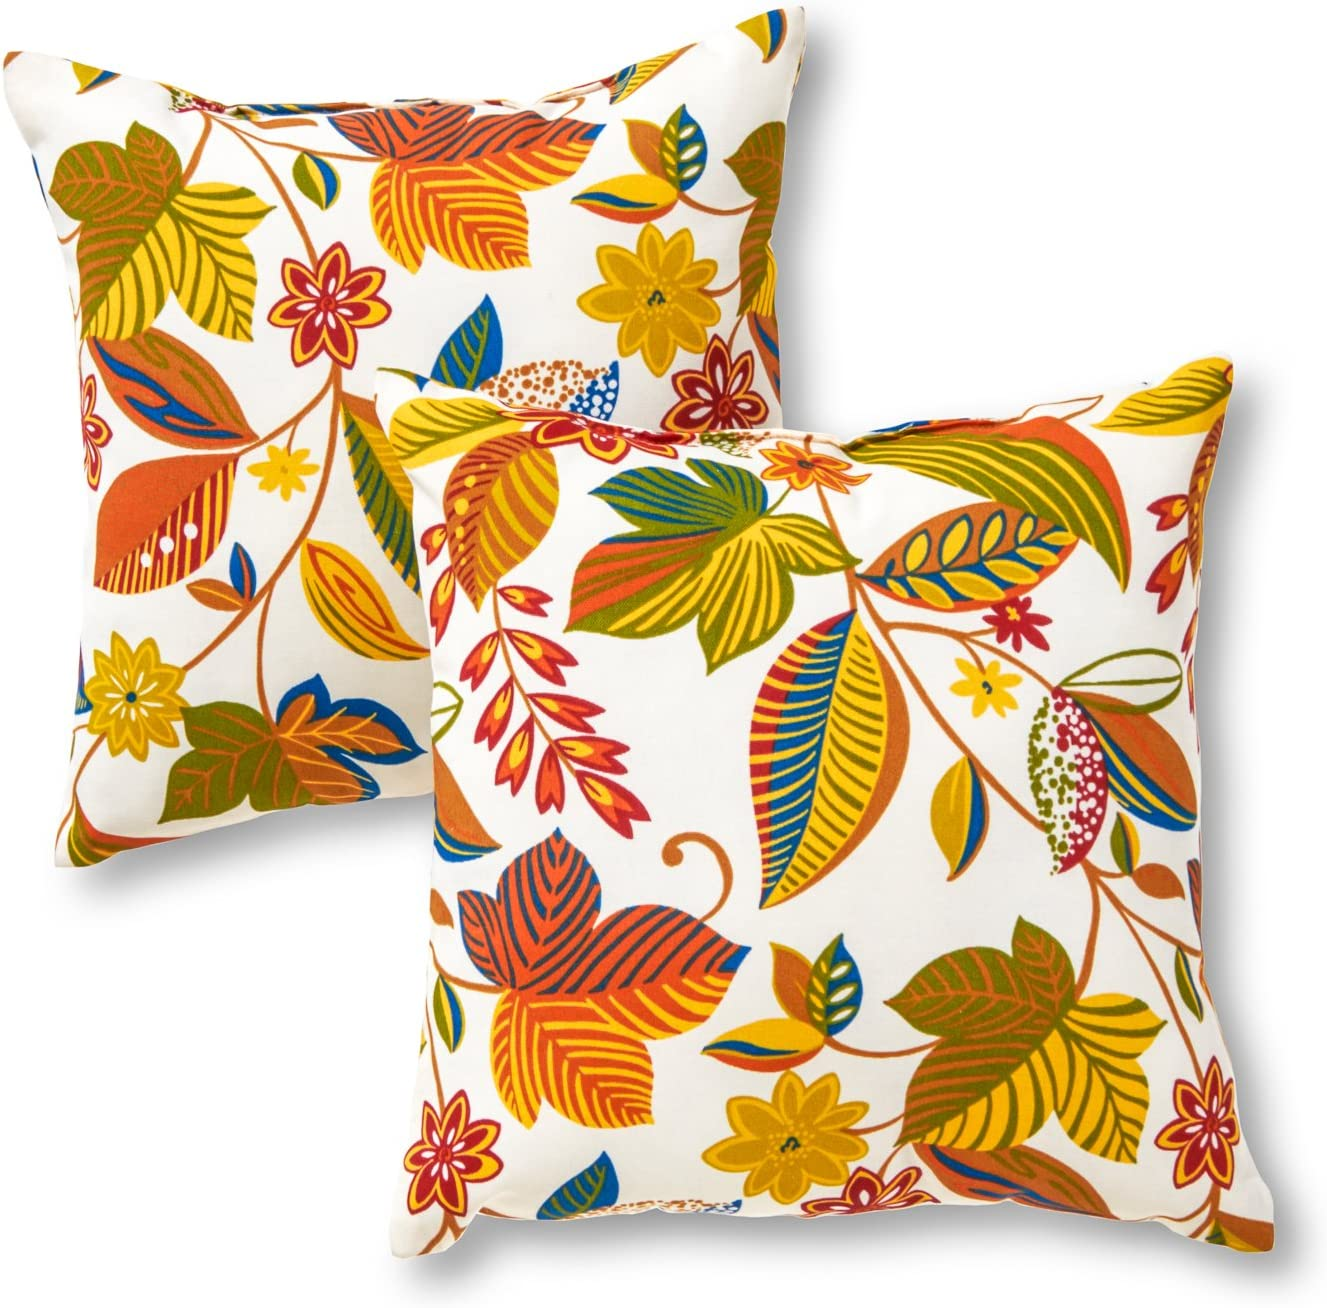 Greendale Home Fashions AZ4803S2-ESPRIT Foliage Outdoor 17-inch Square Throw Pillow (Set of 2)